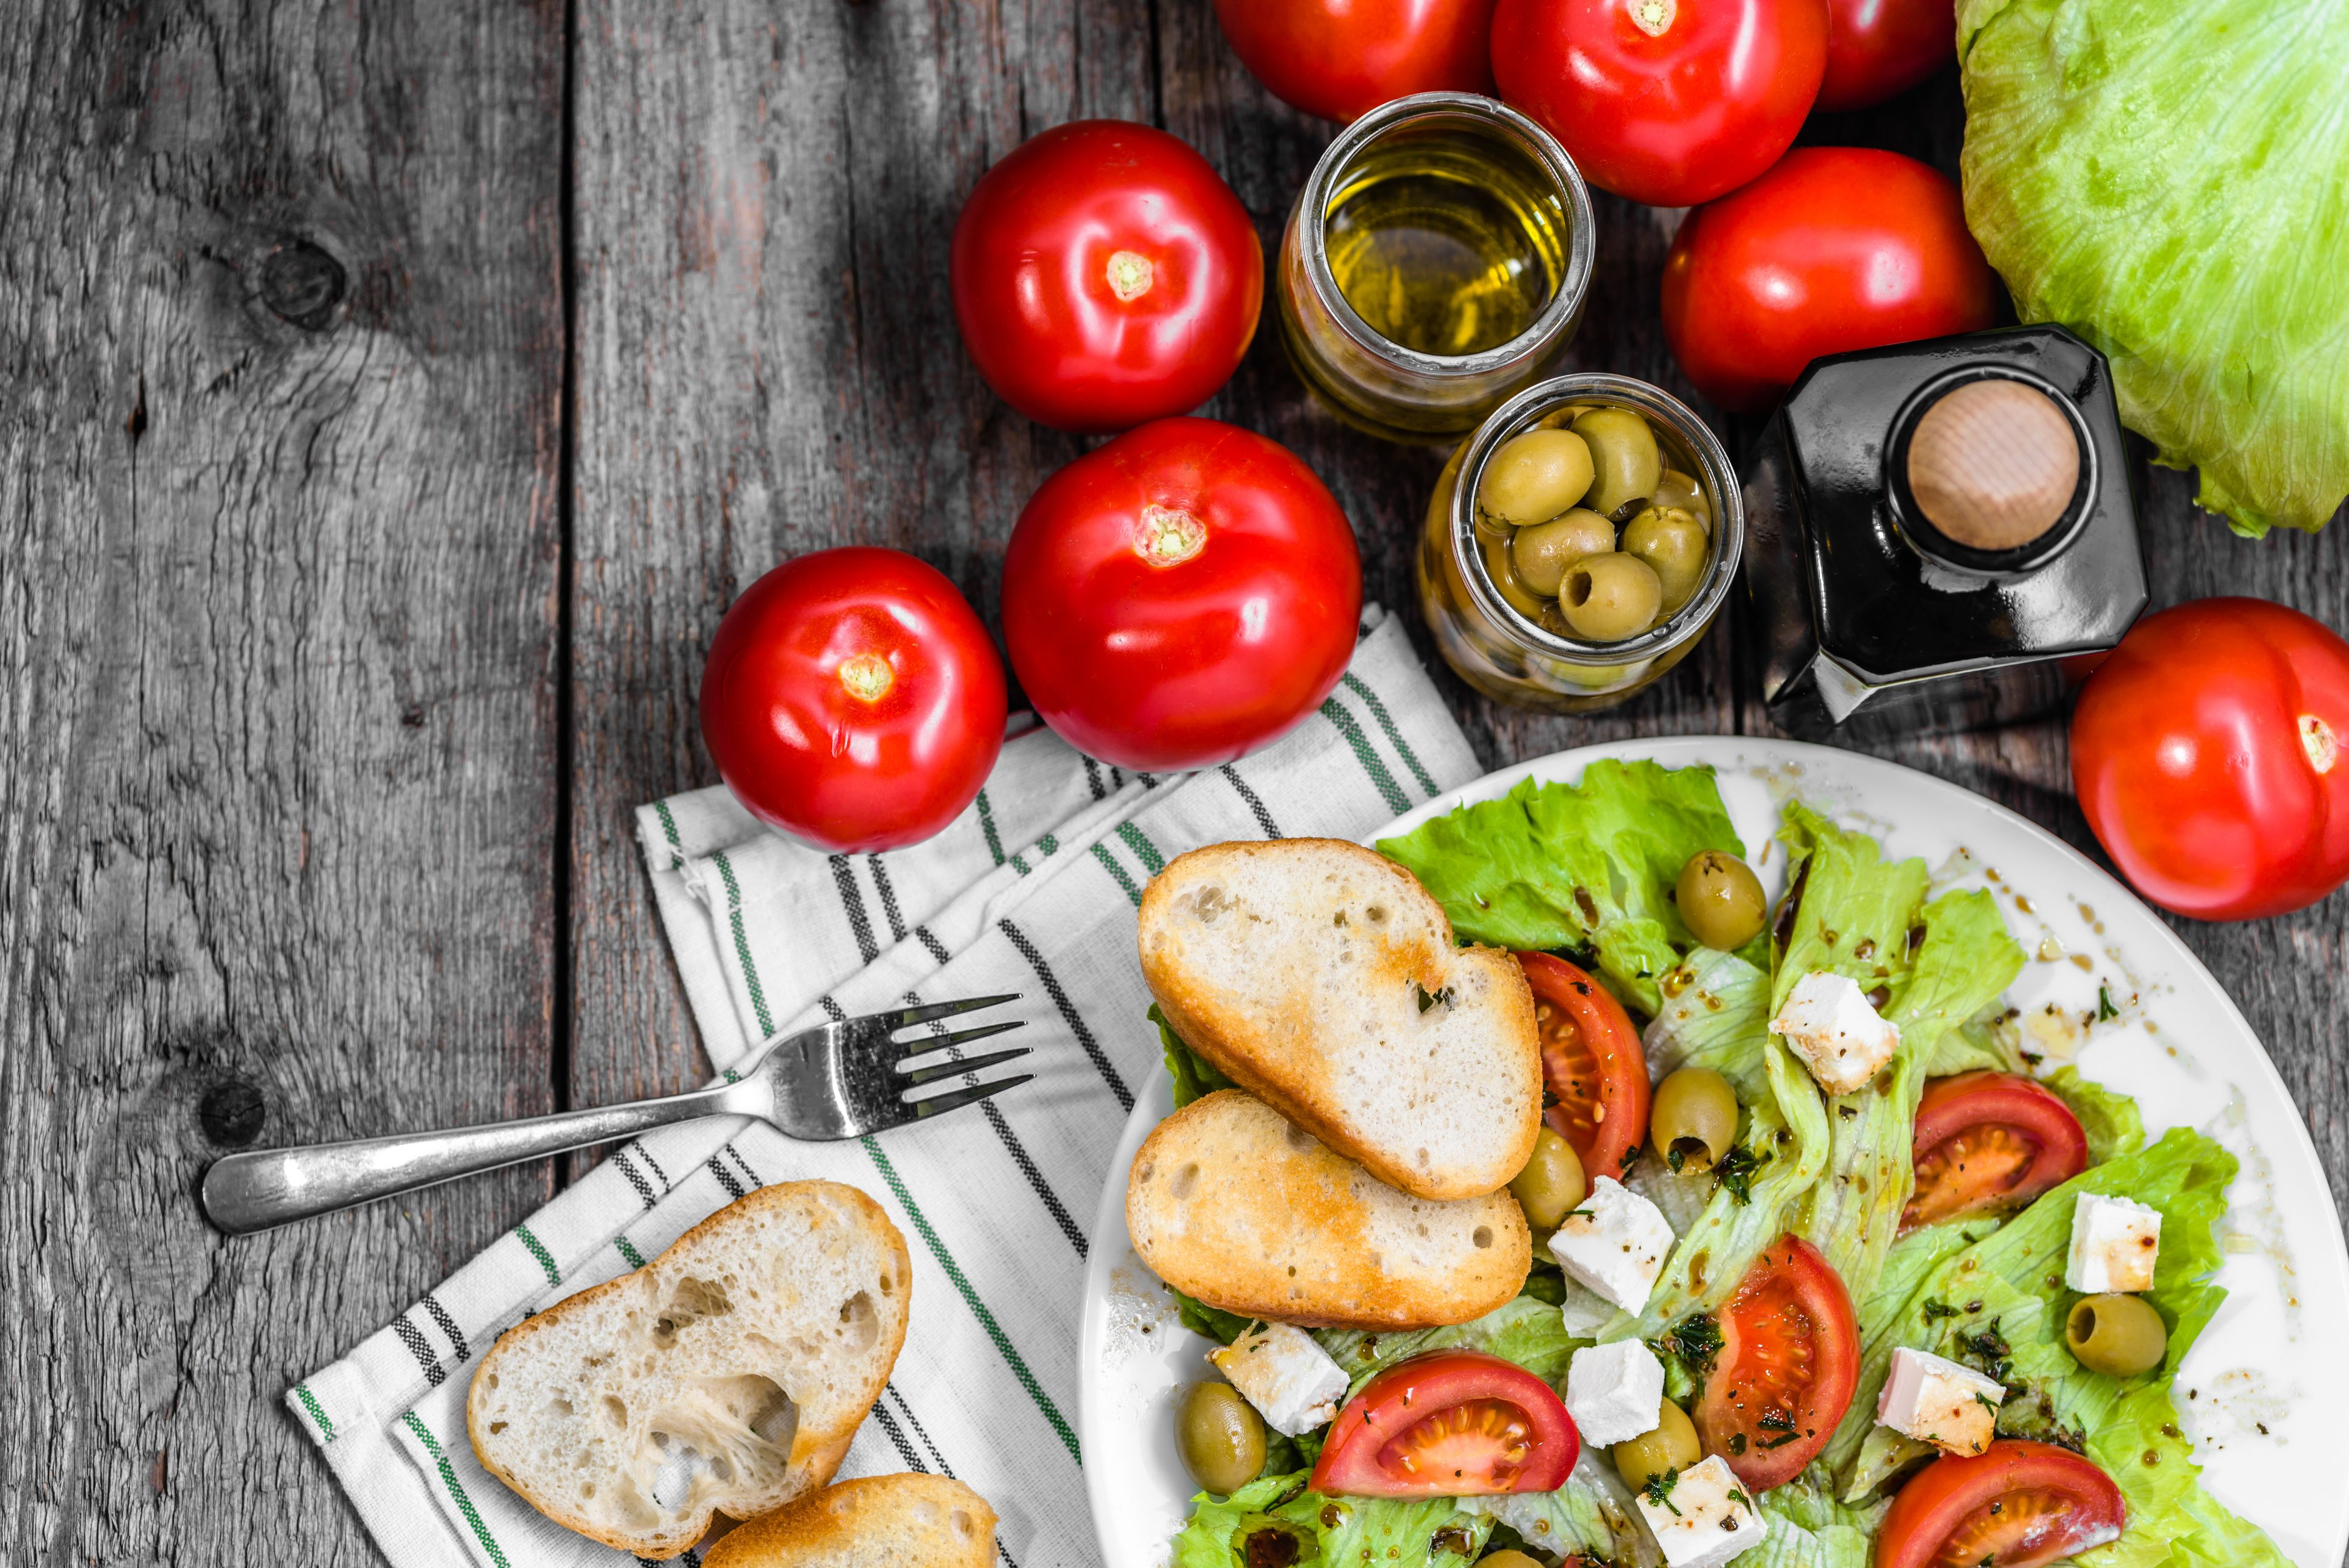 What Is The Mediterranean Diet? - How to Follow The Best